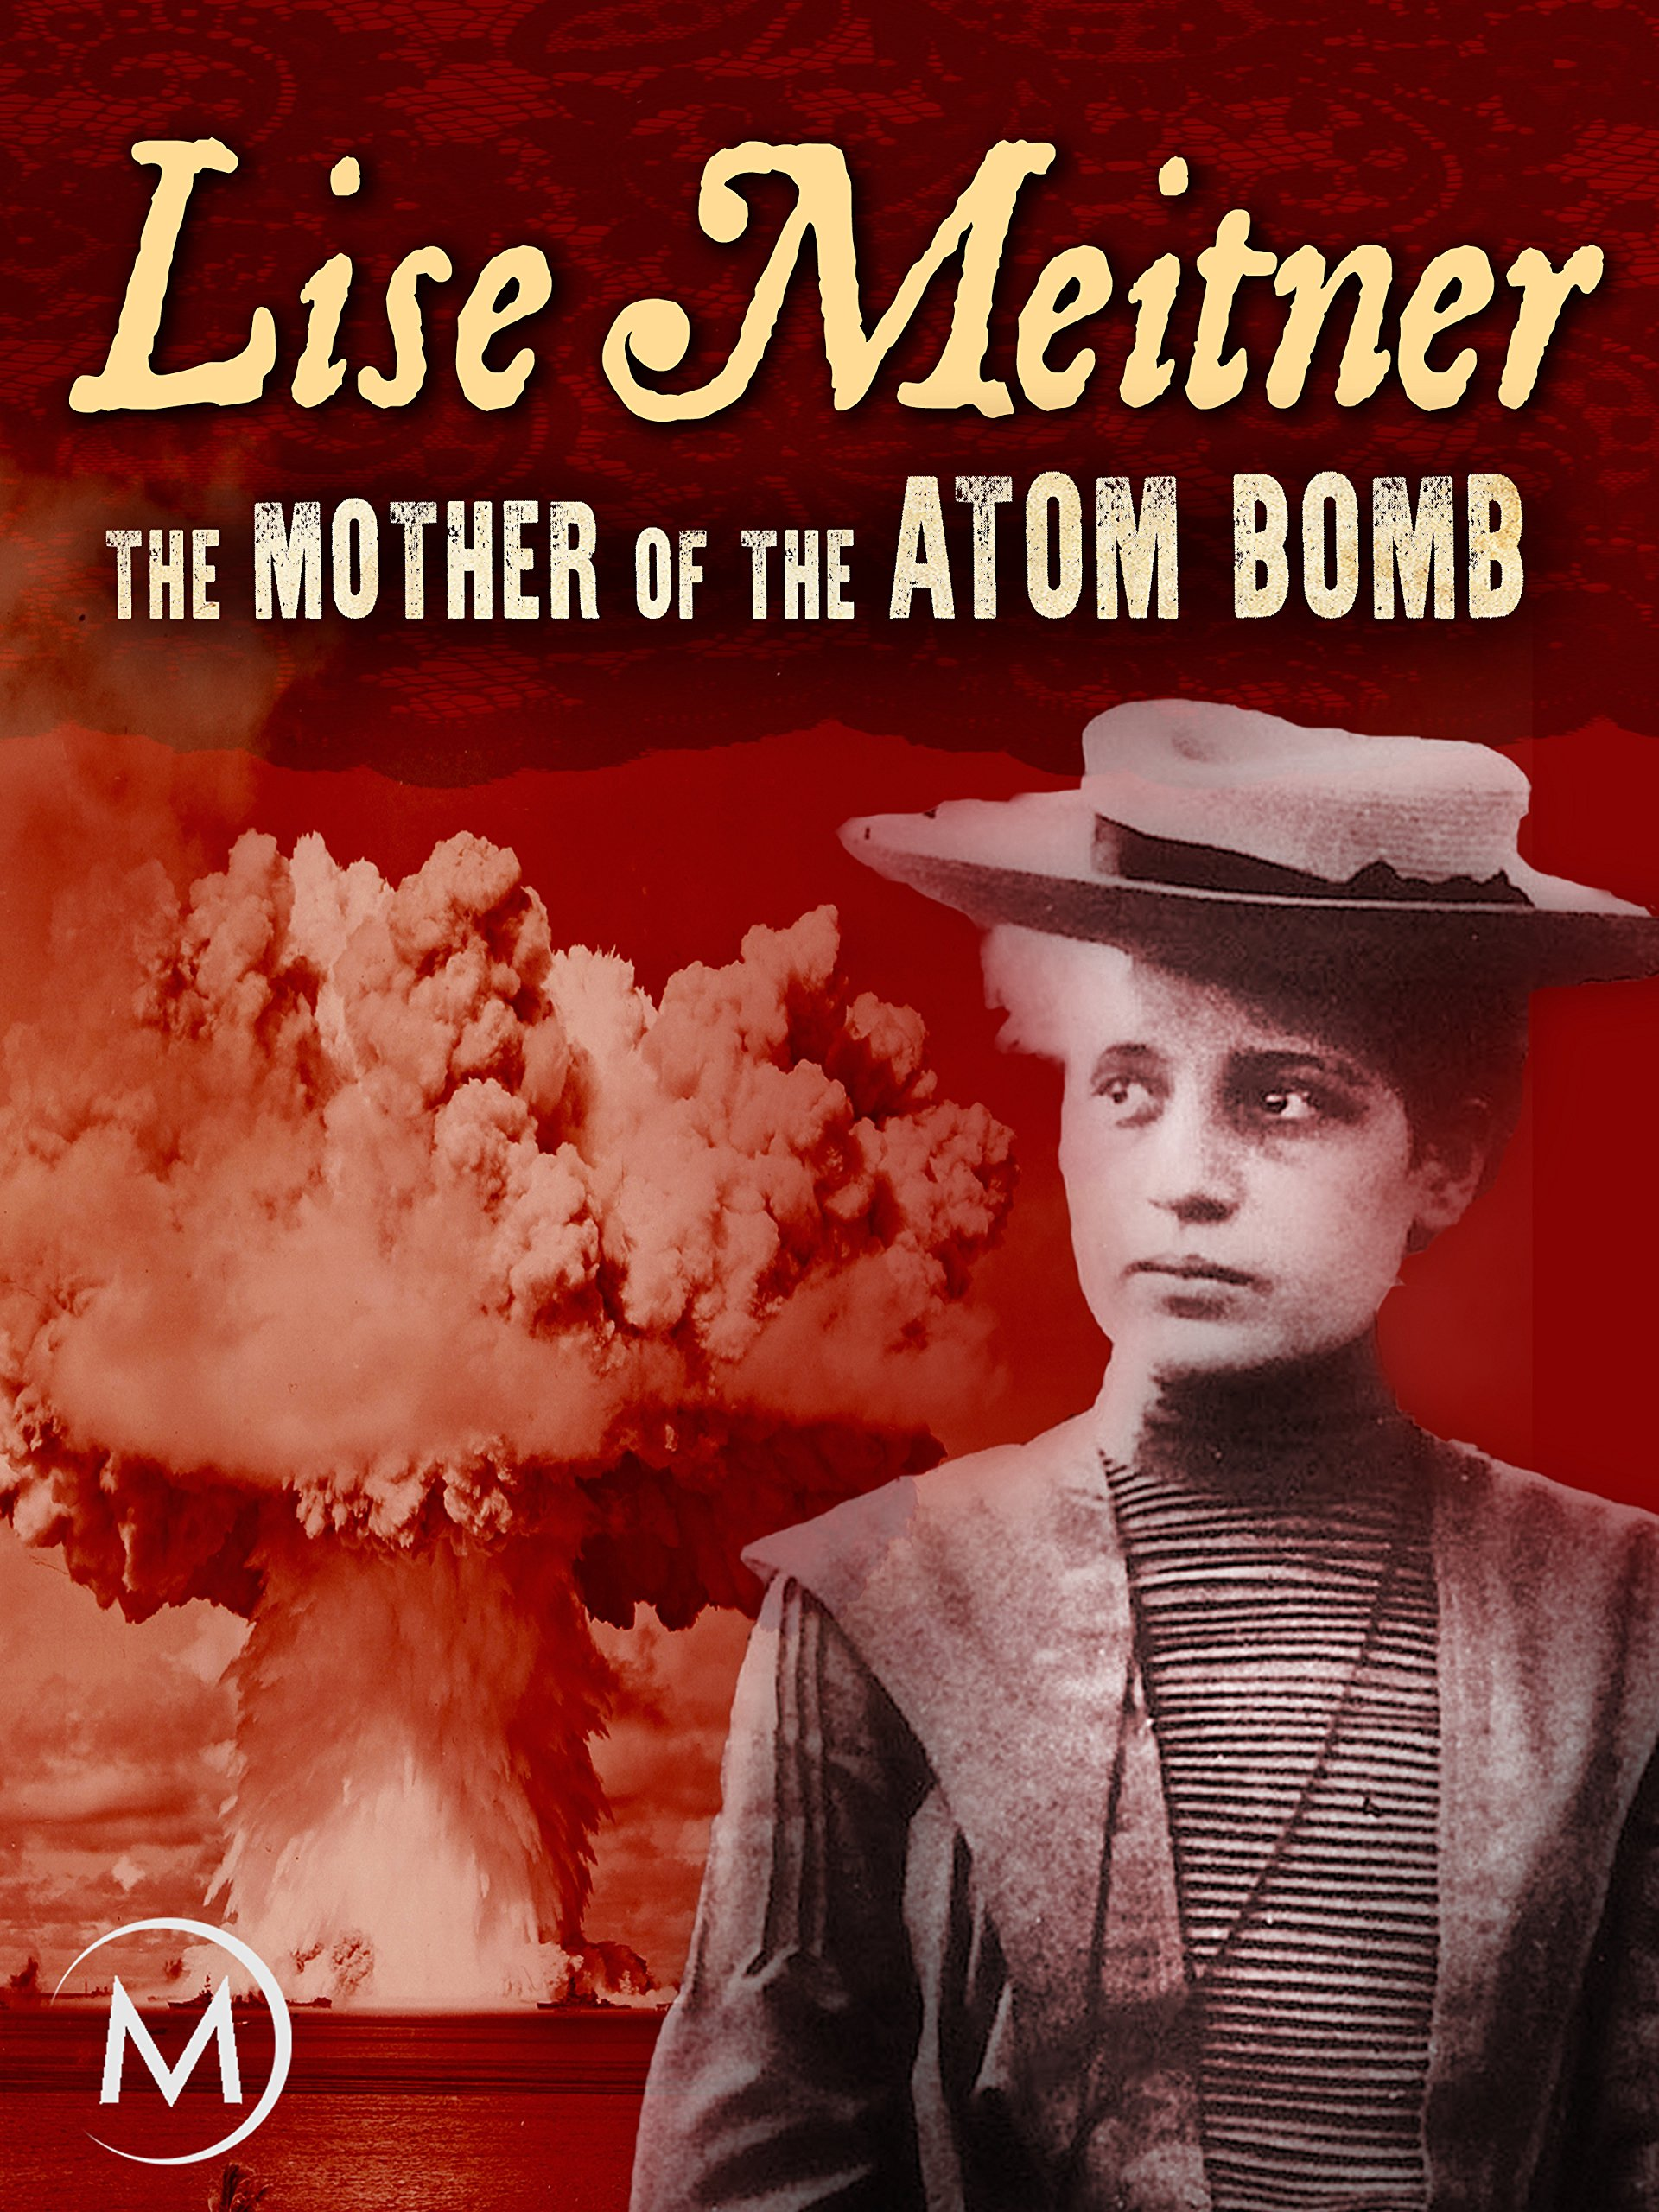 Lise Meitner: The Mother of the Atom Bomb on Amazon Prime Instant Video UK